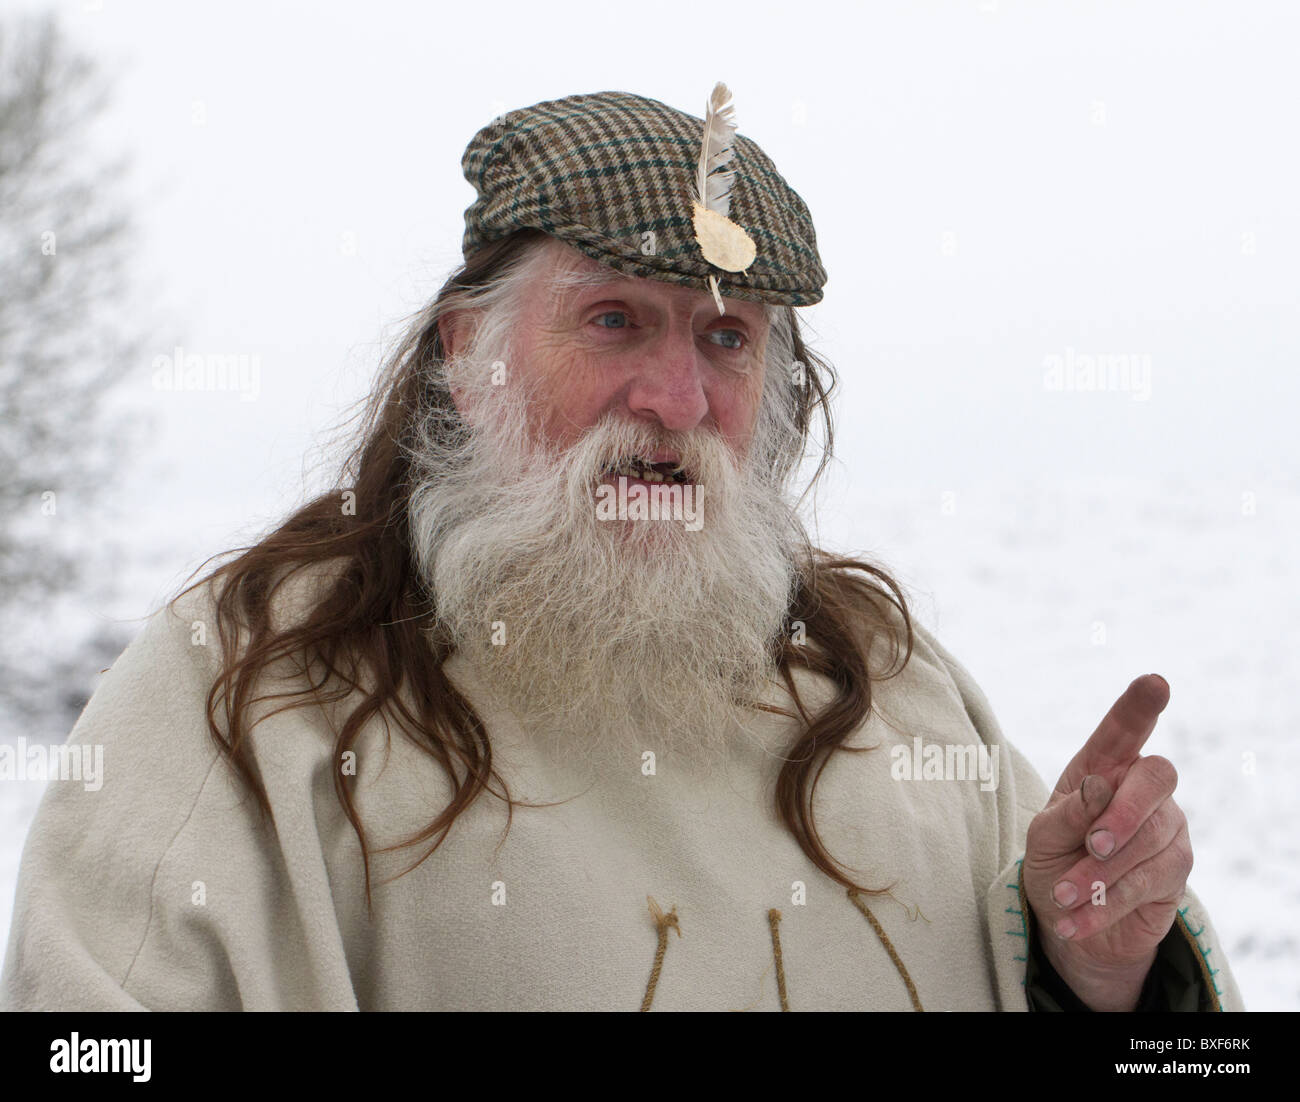 Arch-Druid of Avebury and Keeper of the Stones  Terry Dobney celebrating the Winter Solstice in the snow at Avebury, - Stock Image